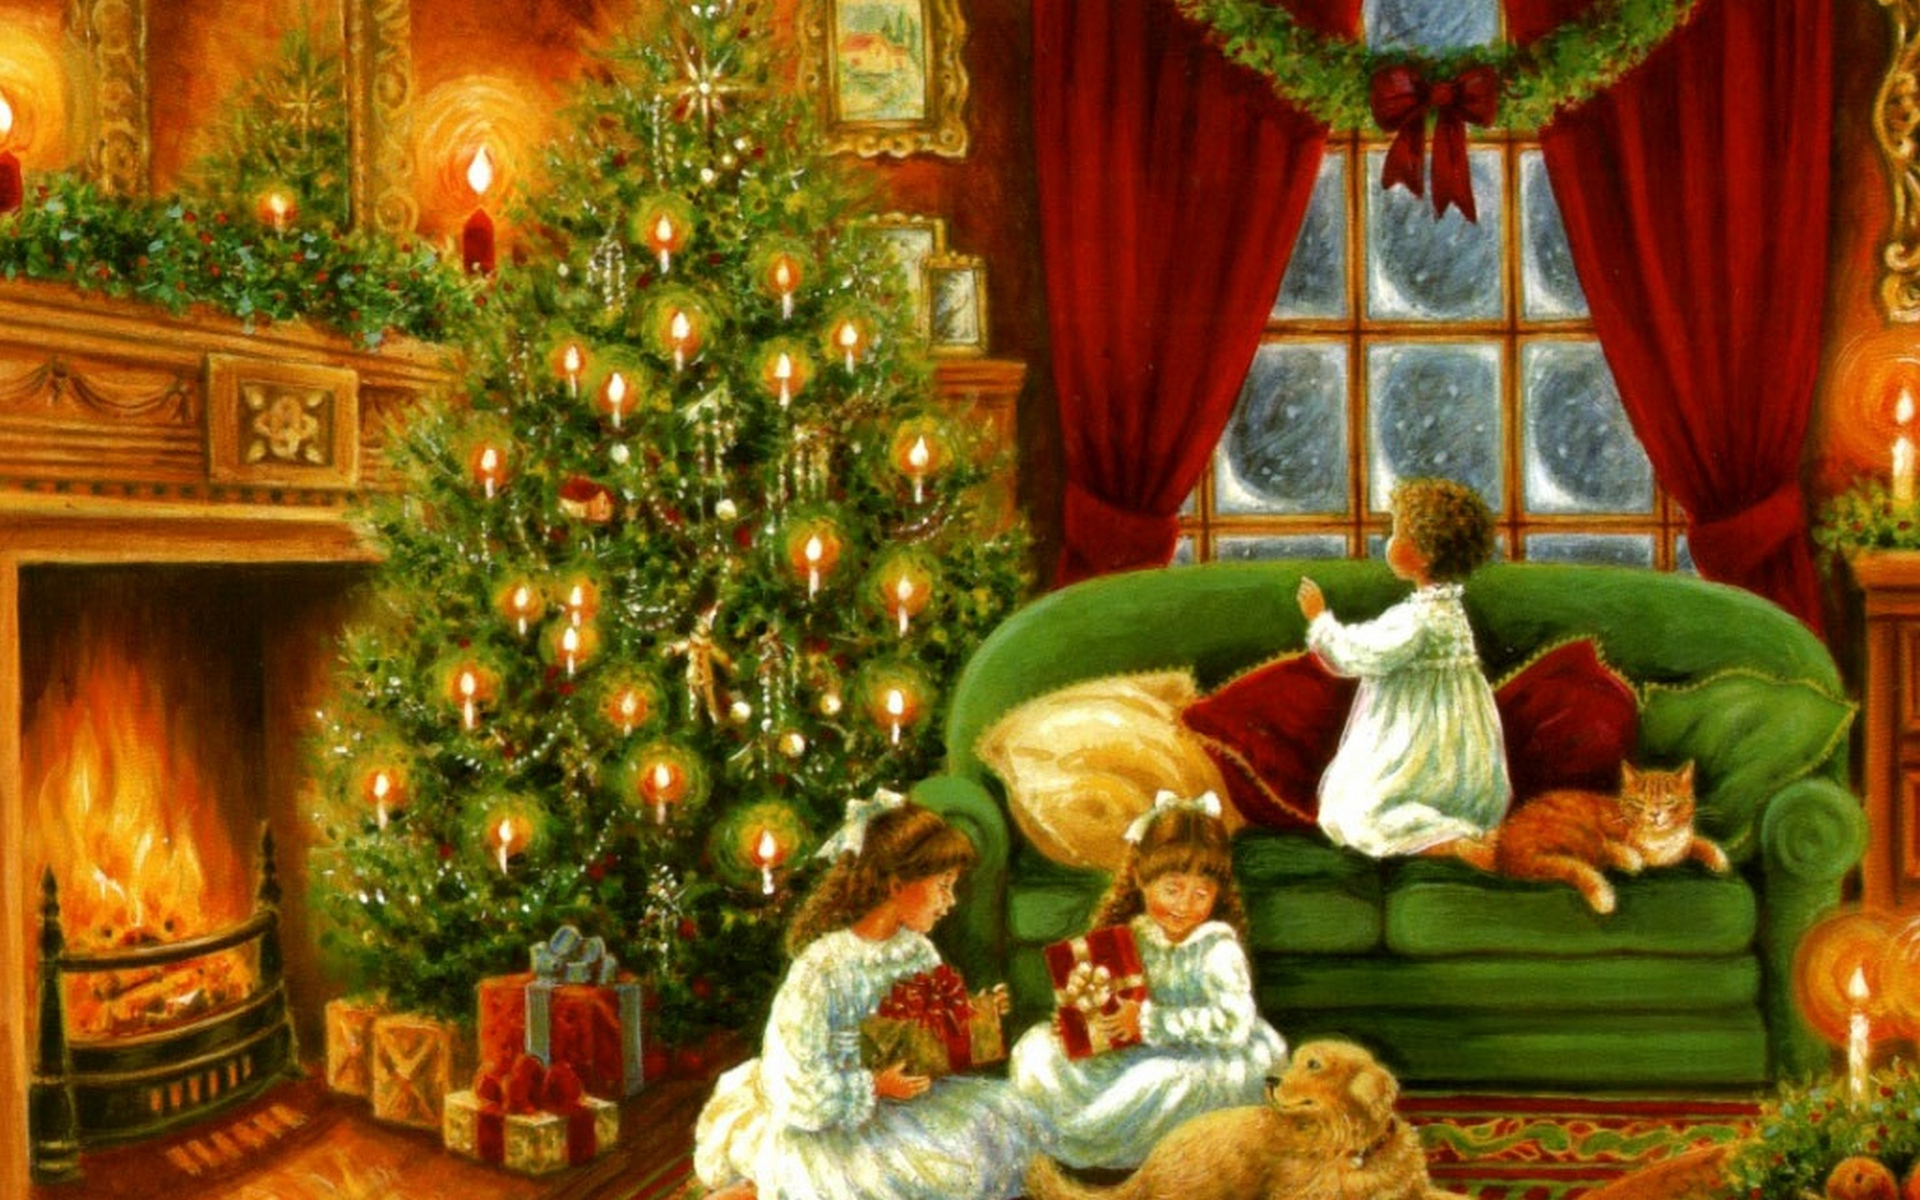 Merry Christmas Wishes HD Wallpaper